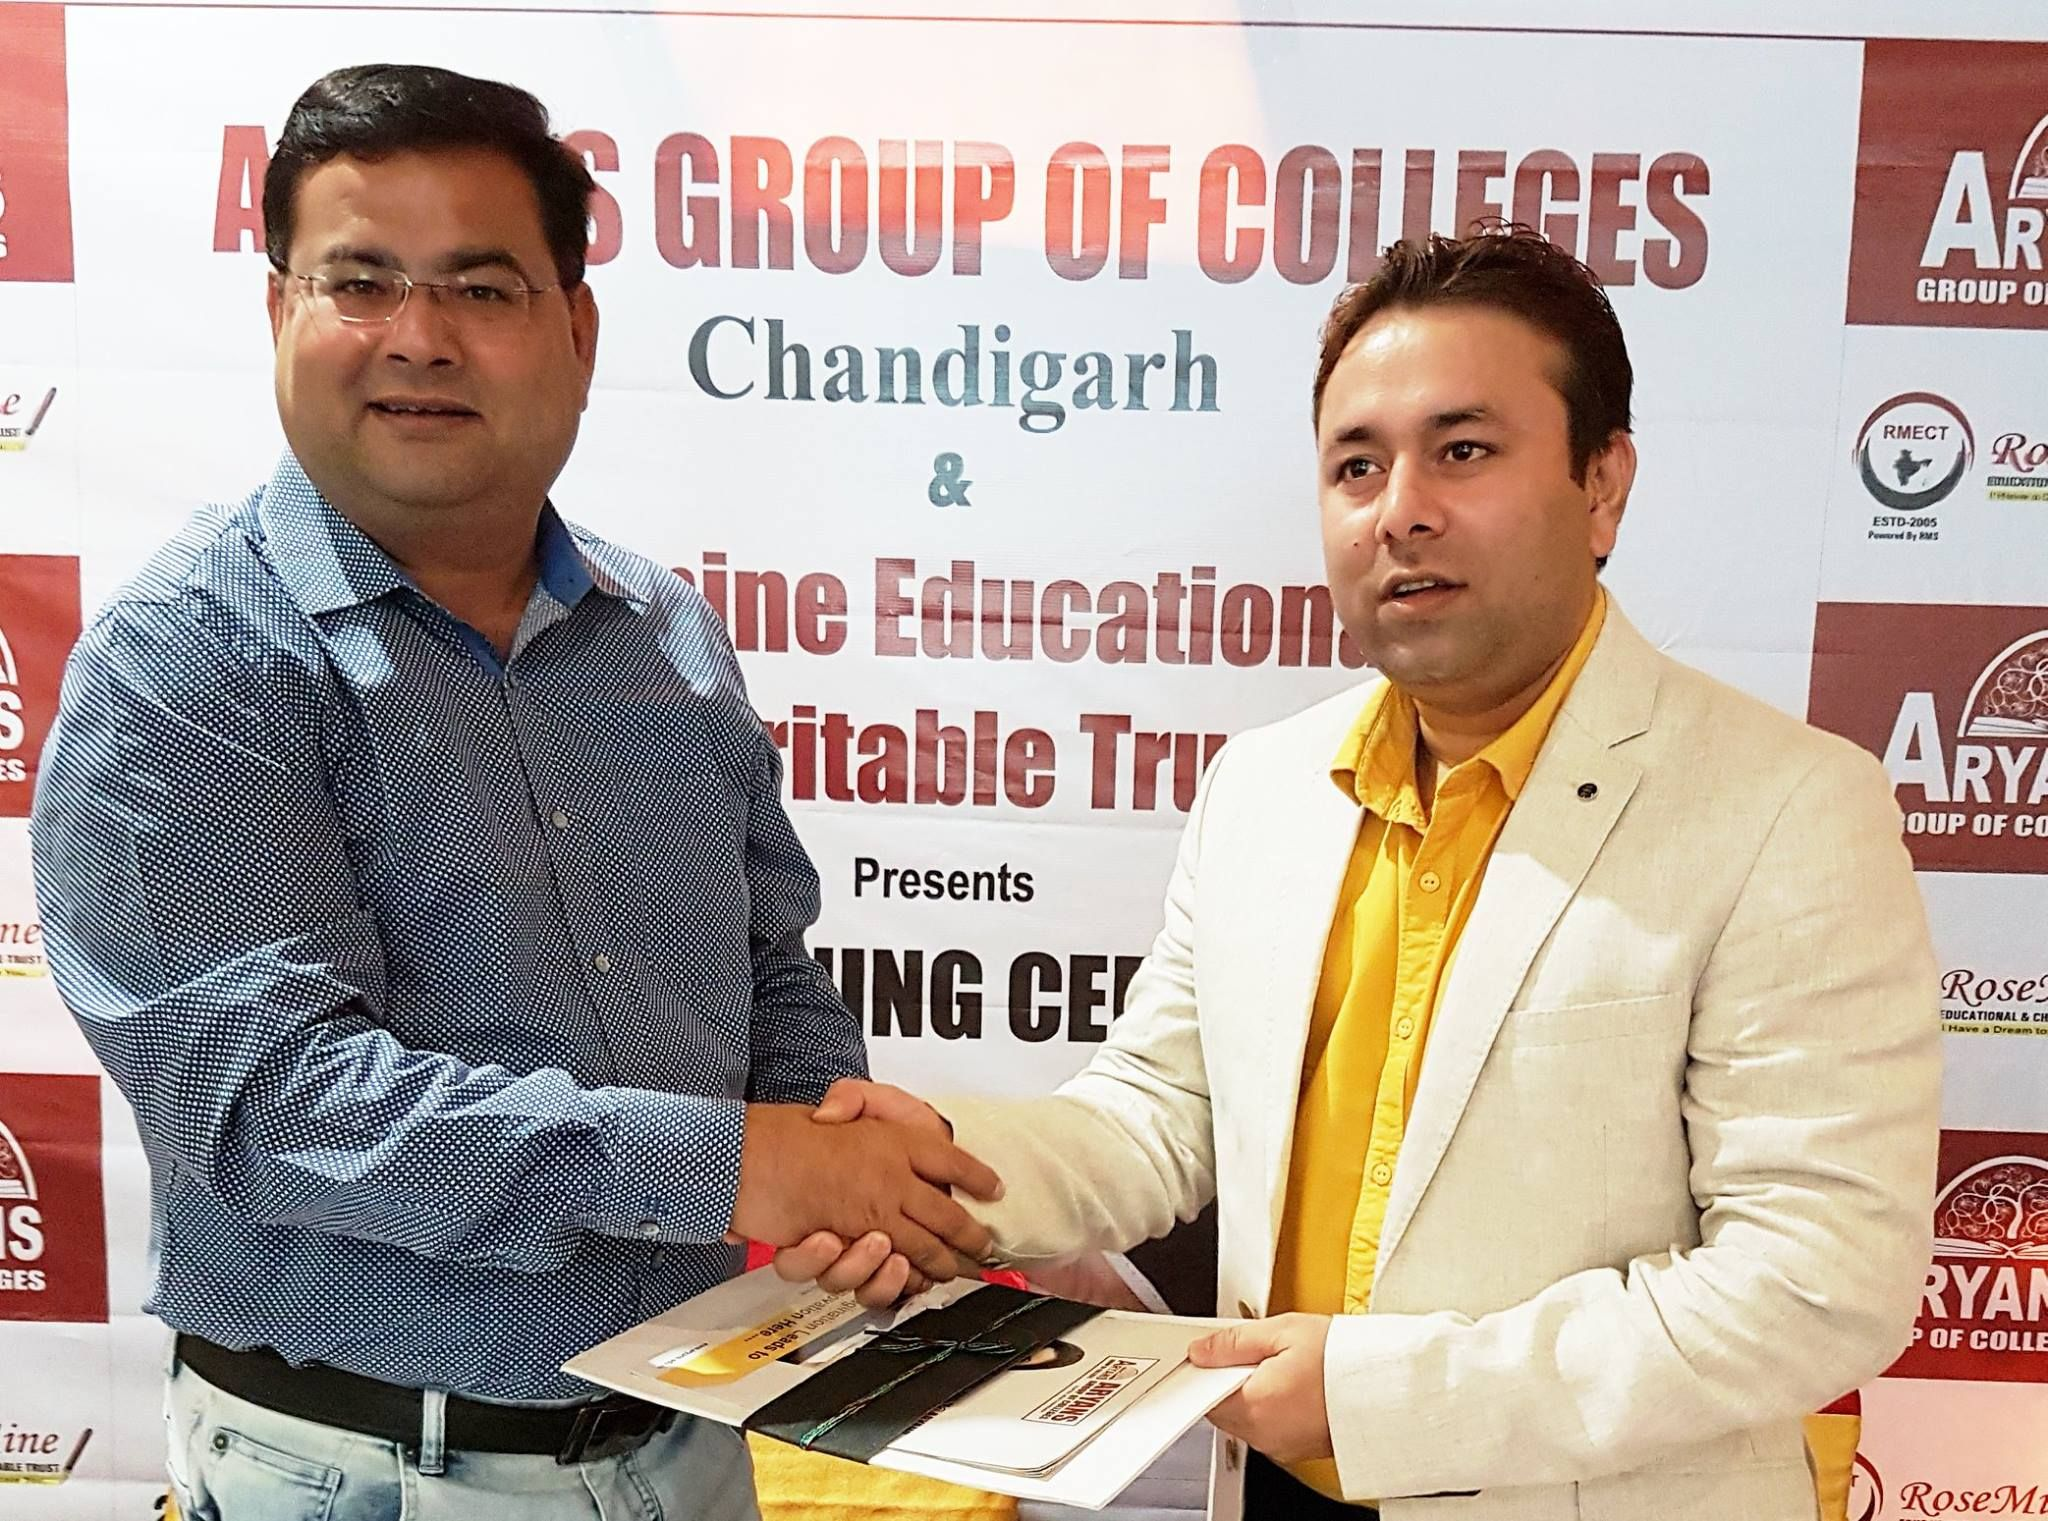 ... today Aryans Group of Colleges, Chandigarh has signed a Memorandum of Understanding (MoU) with Rosemine Educational and Charitable Trust, Patna.